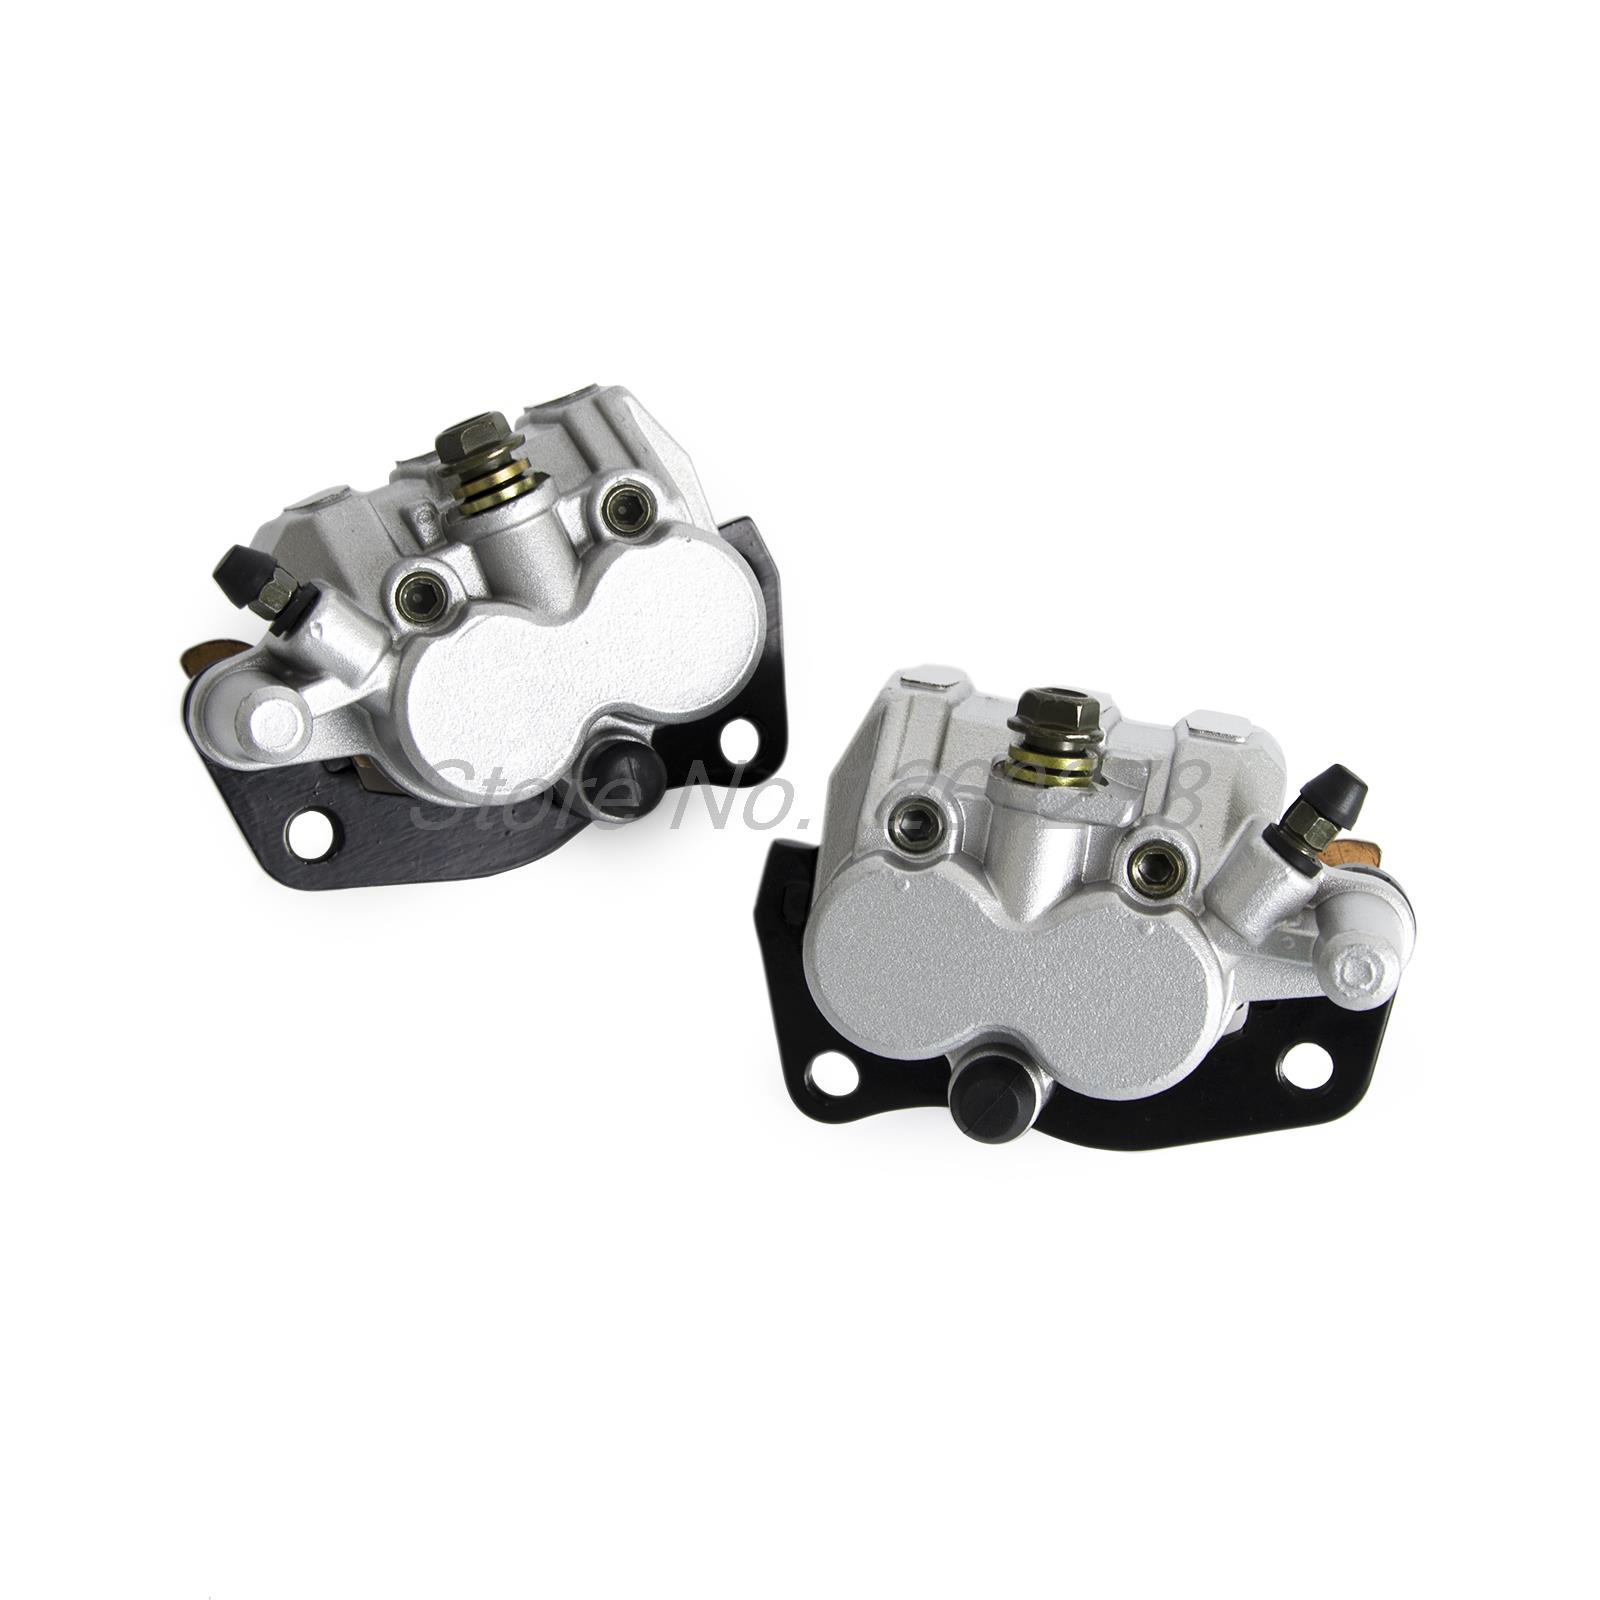 Front Right & Left Brake Caliper With Pads For Suzuki Burgman AN400 2007 2008 2009 2010 2011 left front brake caliper with pads for yamaha utv rhino 660 2004 2005 2006 2007